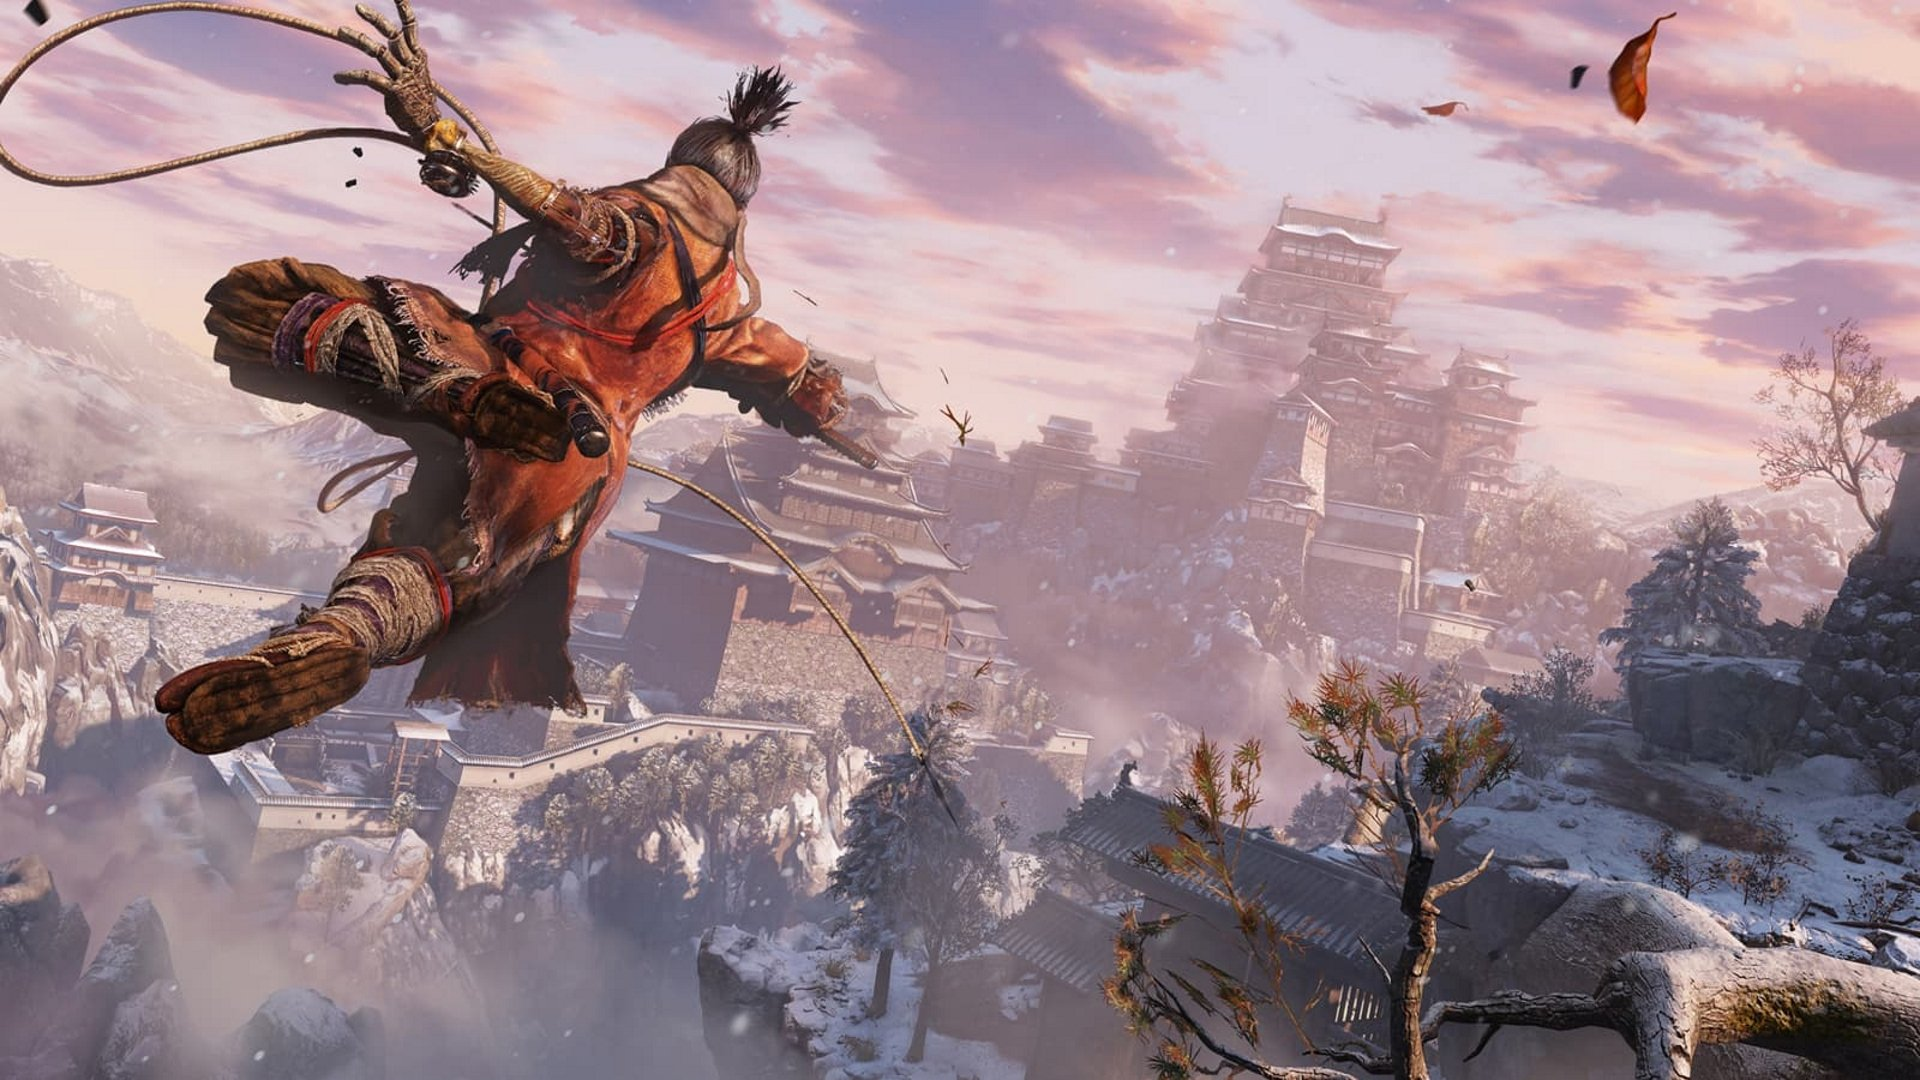 All Prosthetic Arm attachments in Sekiro: Shadows Die Twice